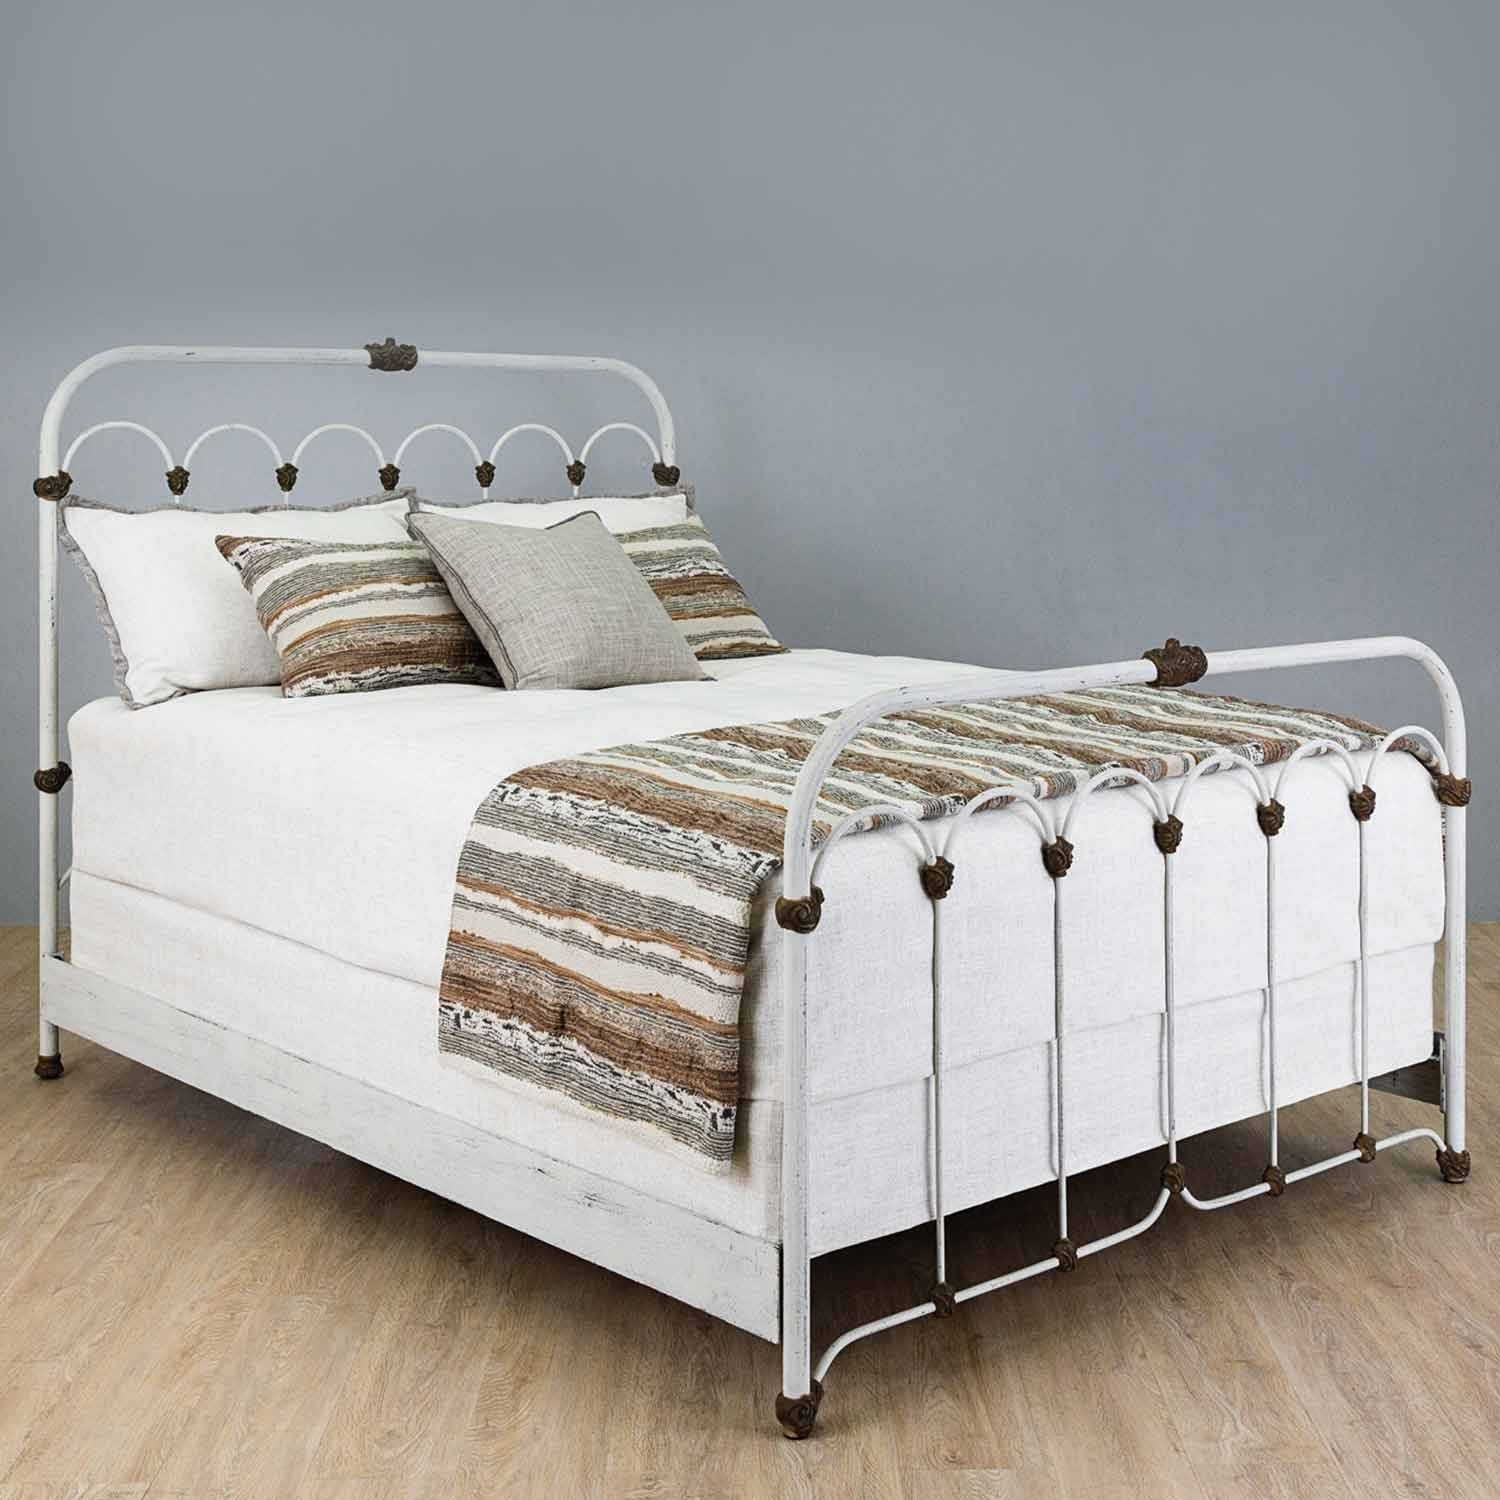 Hillsboro Iron Bed with Metal Profile Frame by Wesley